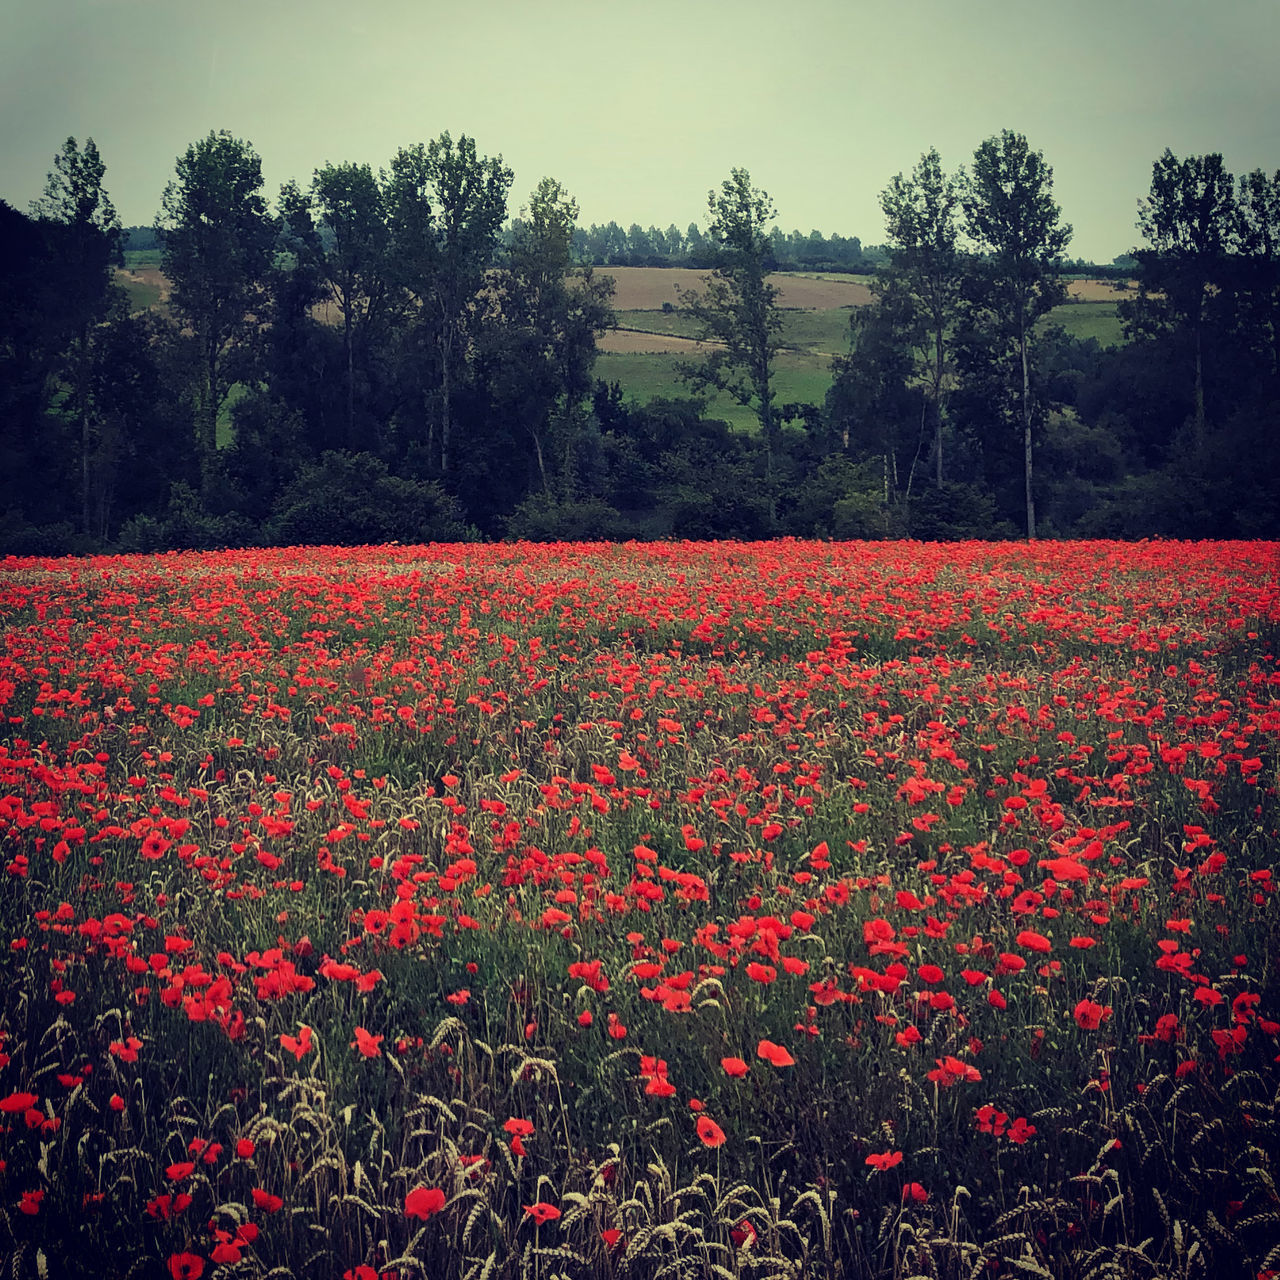 RED FLOWERS GROWING ON FIELD BY TREES